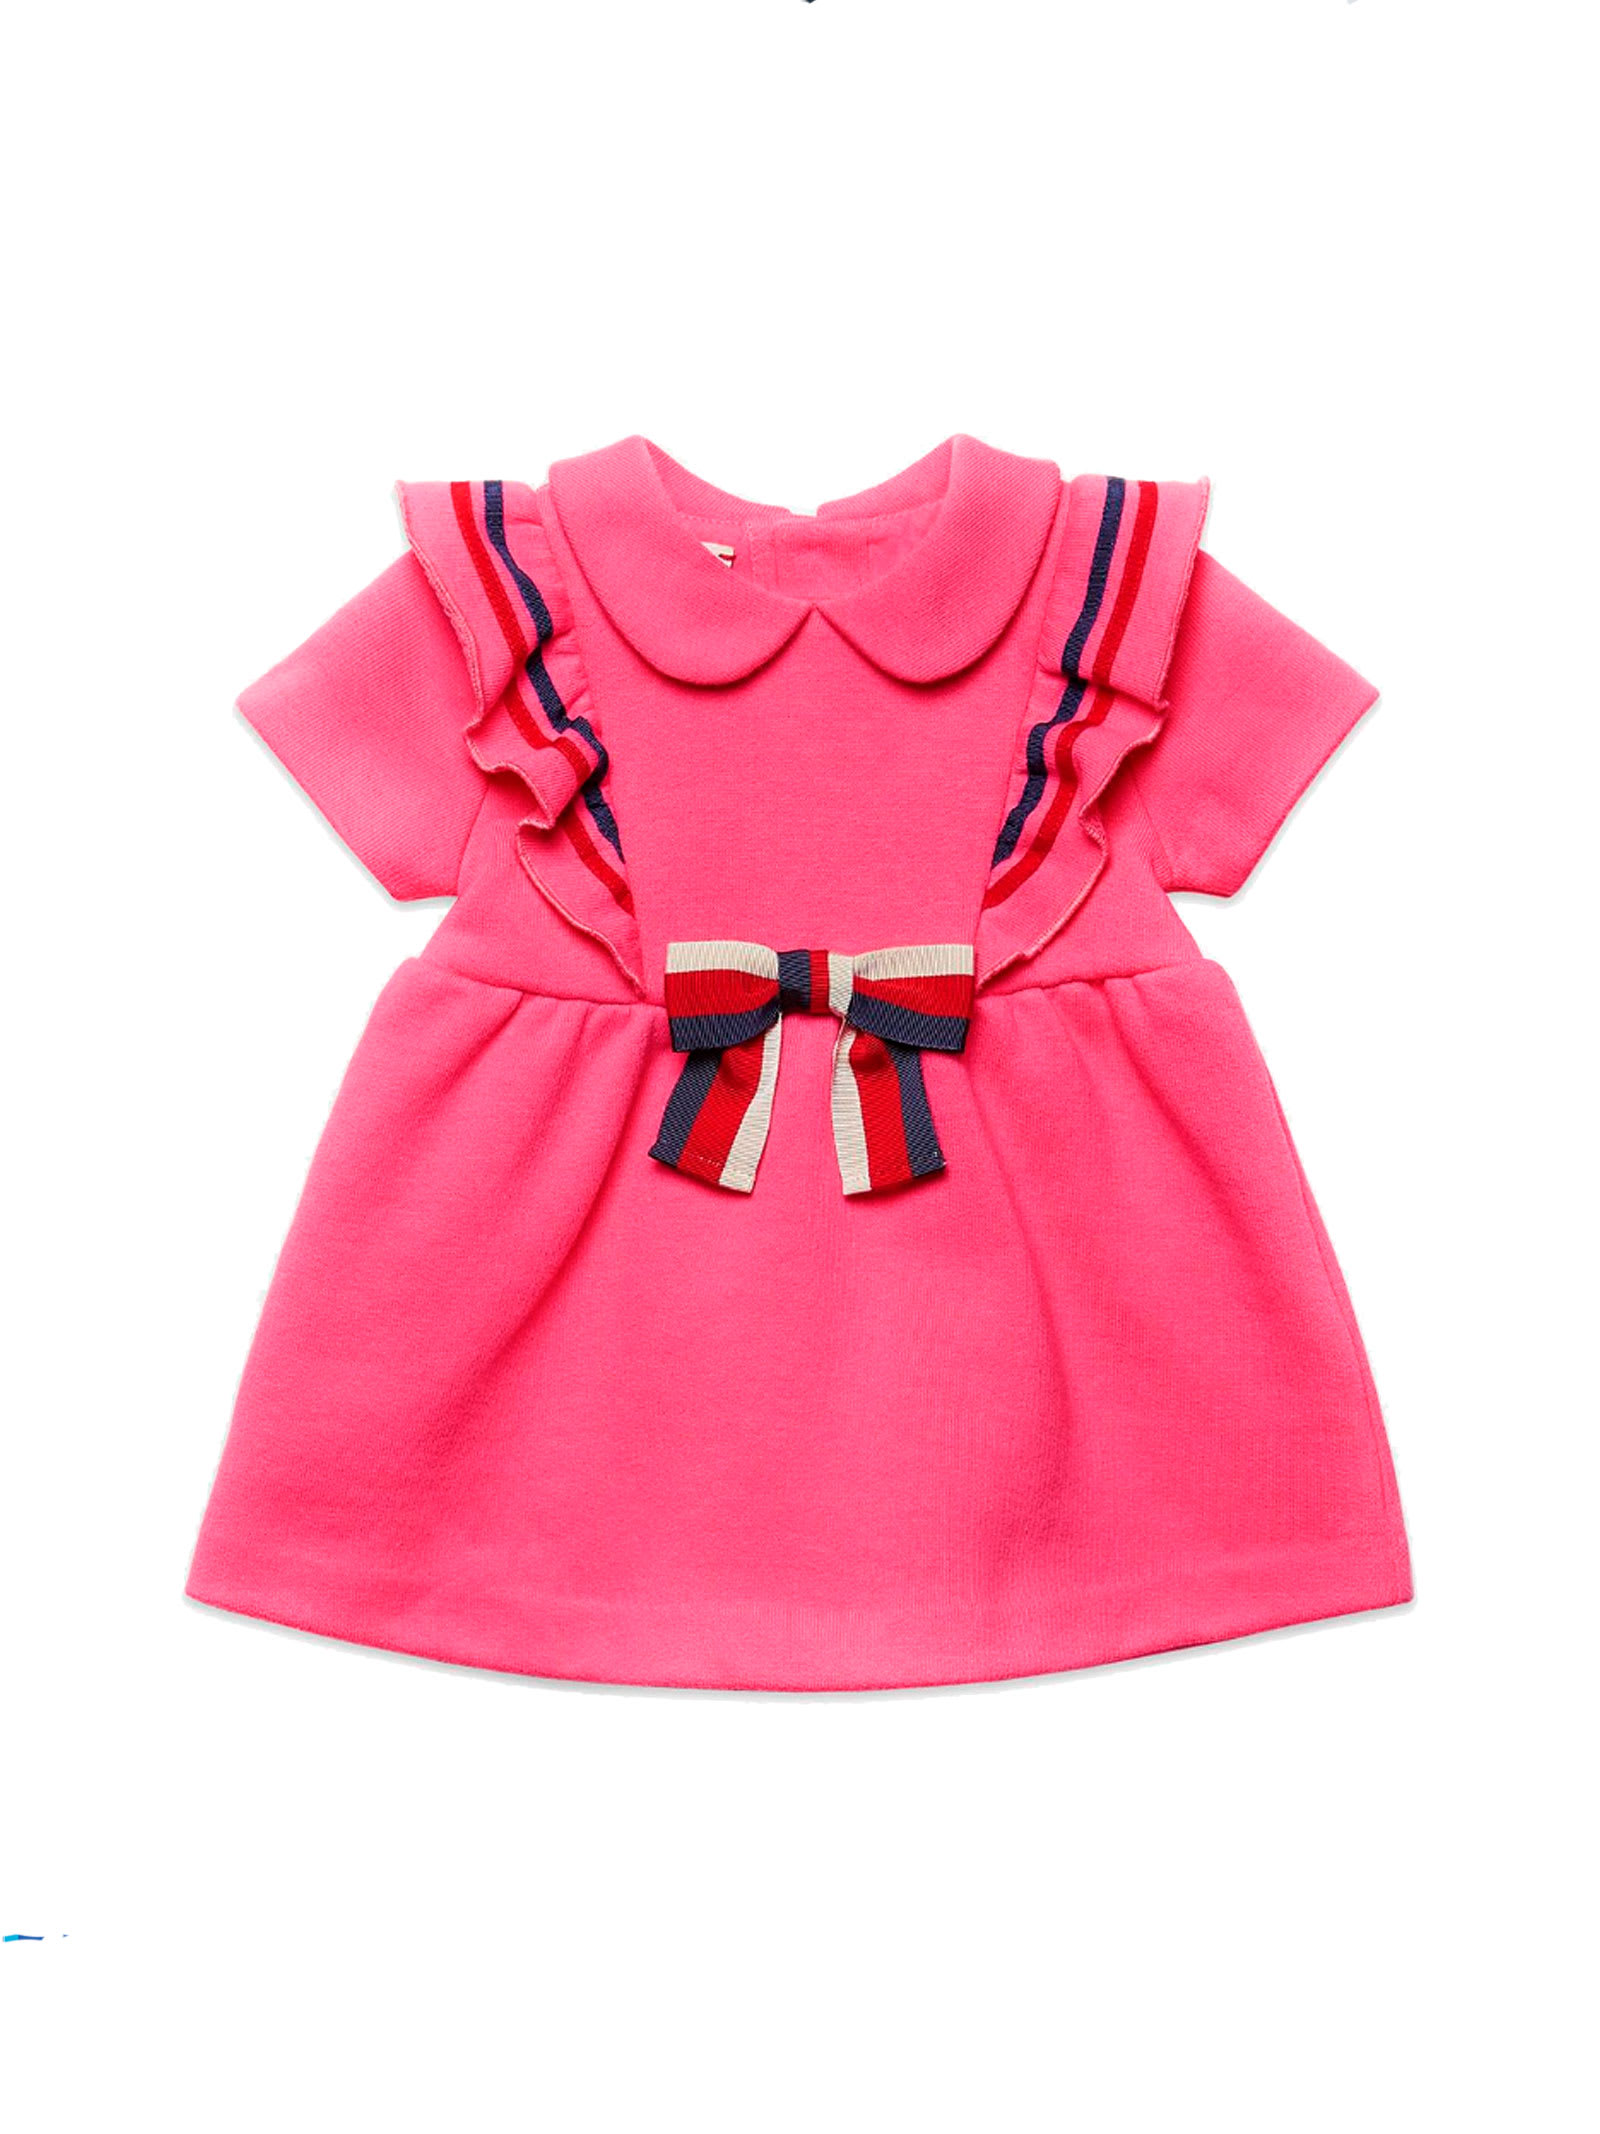 Gucci Newborn Pink Dress